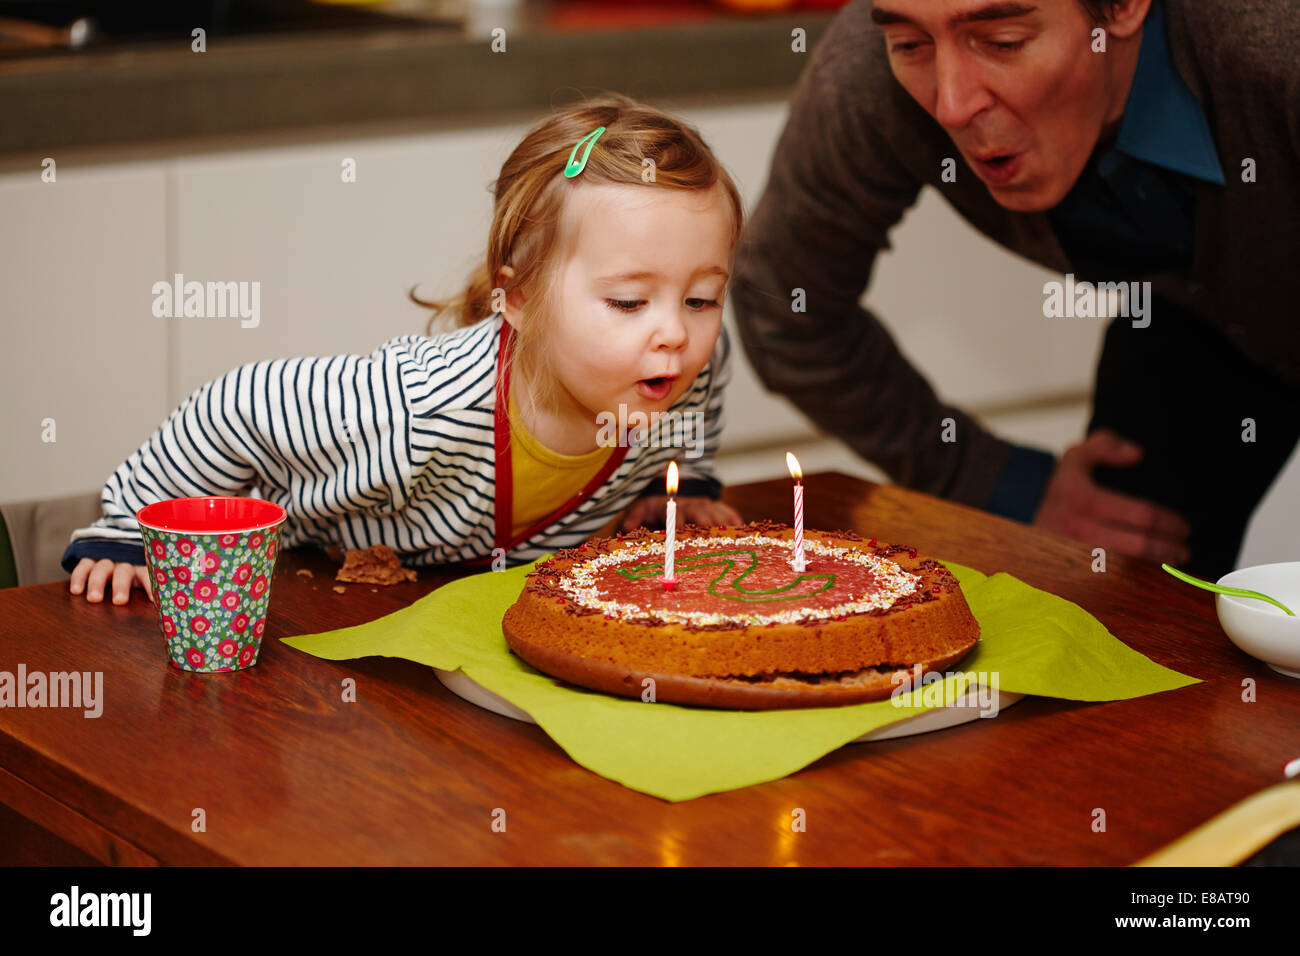 Young girl blowing out birthday candles on cake - Stock Image